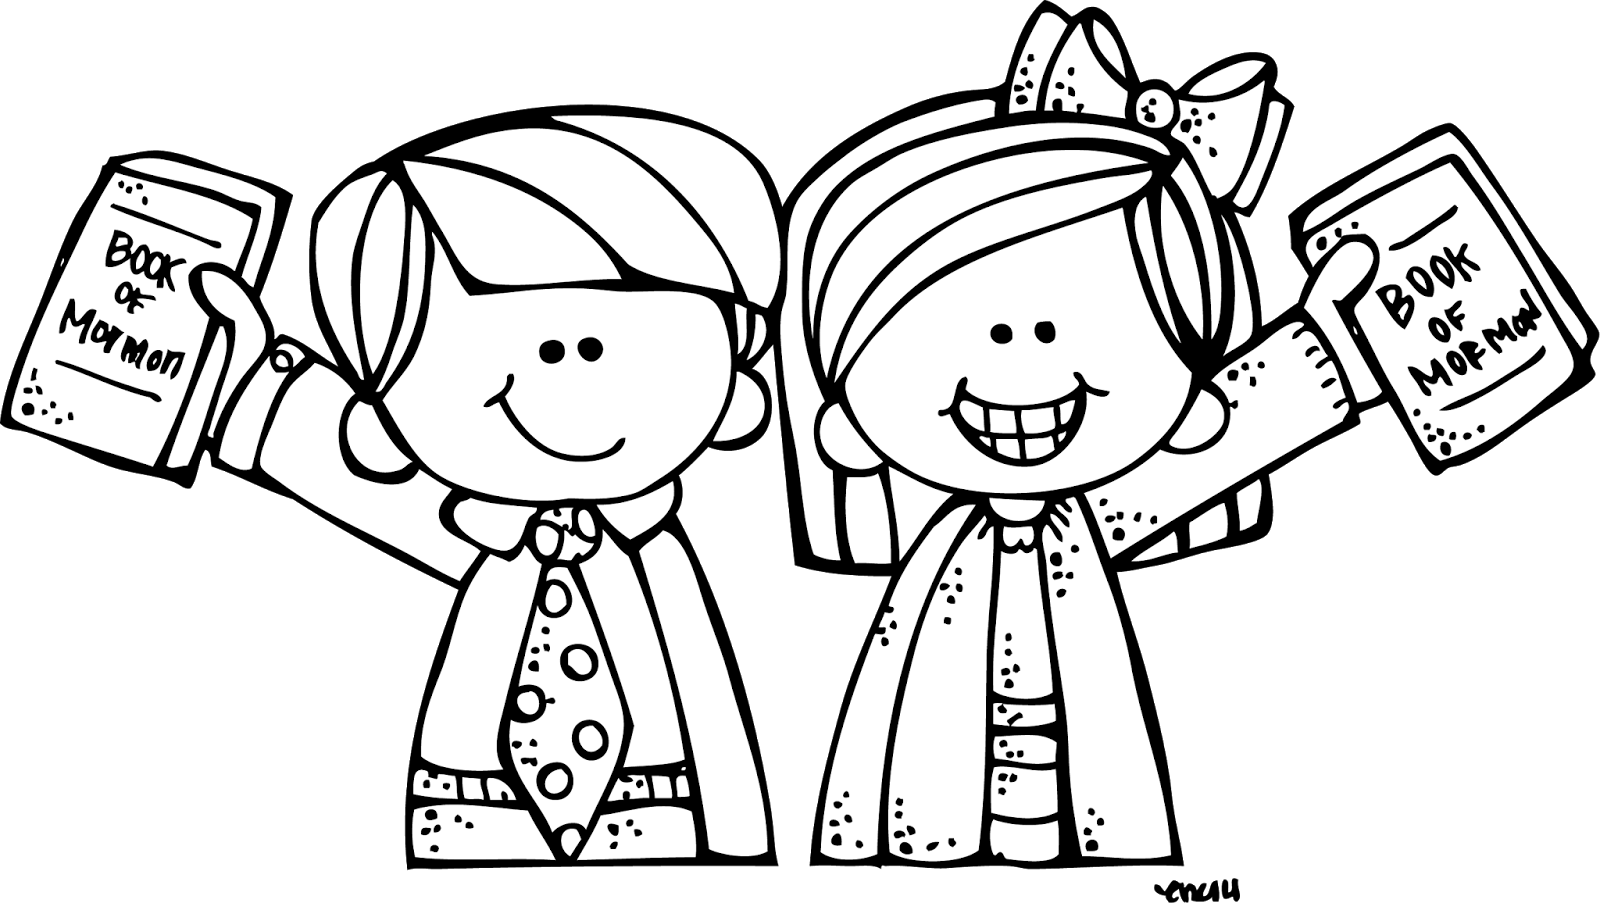 Free Black And White Lds Clipart, Download Free Clip Art.